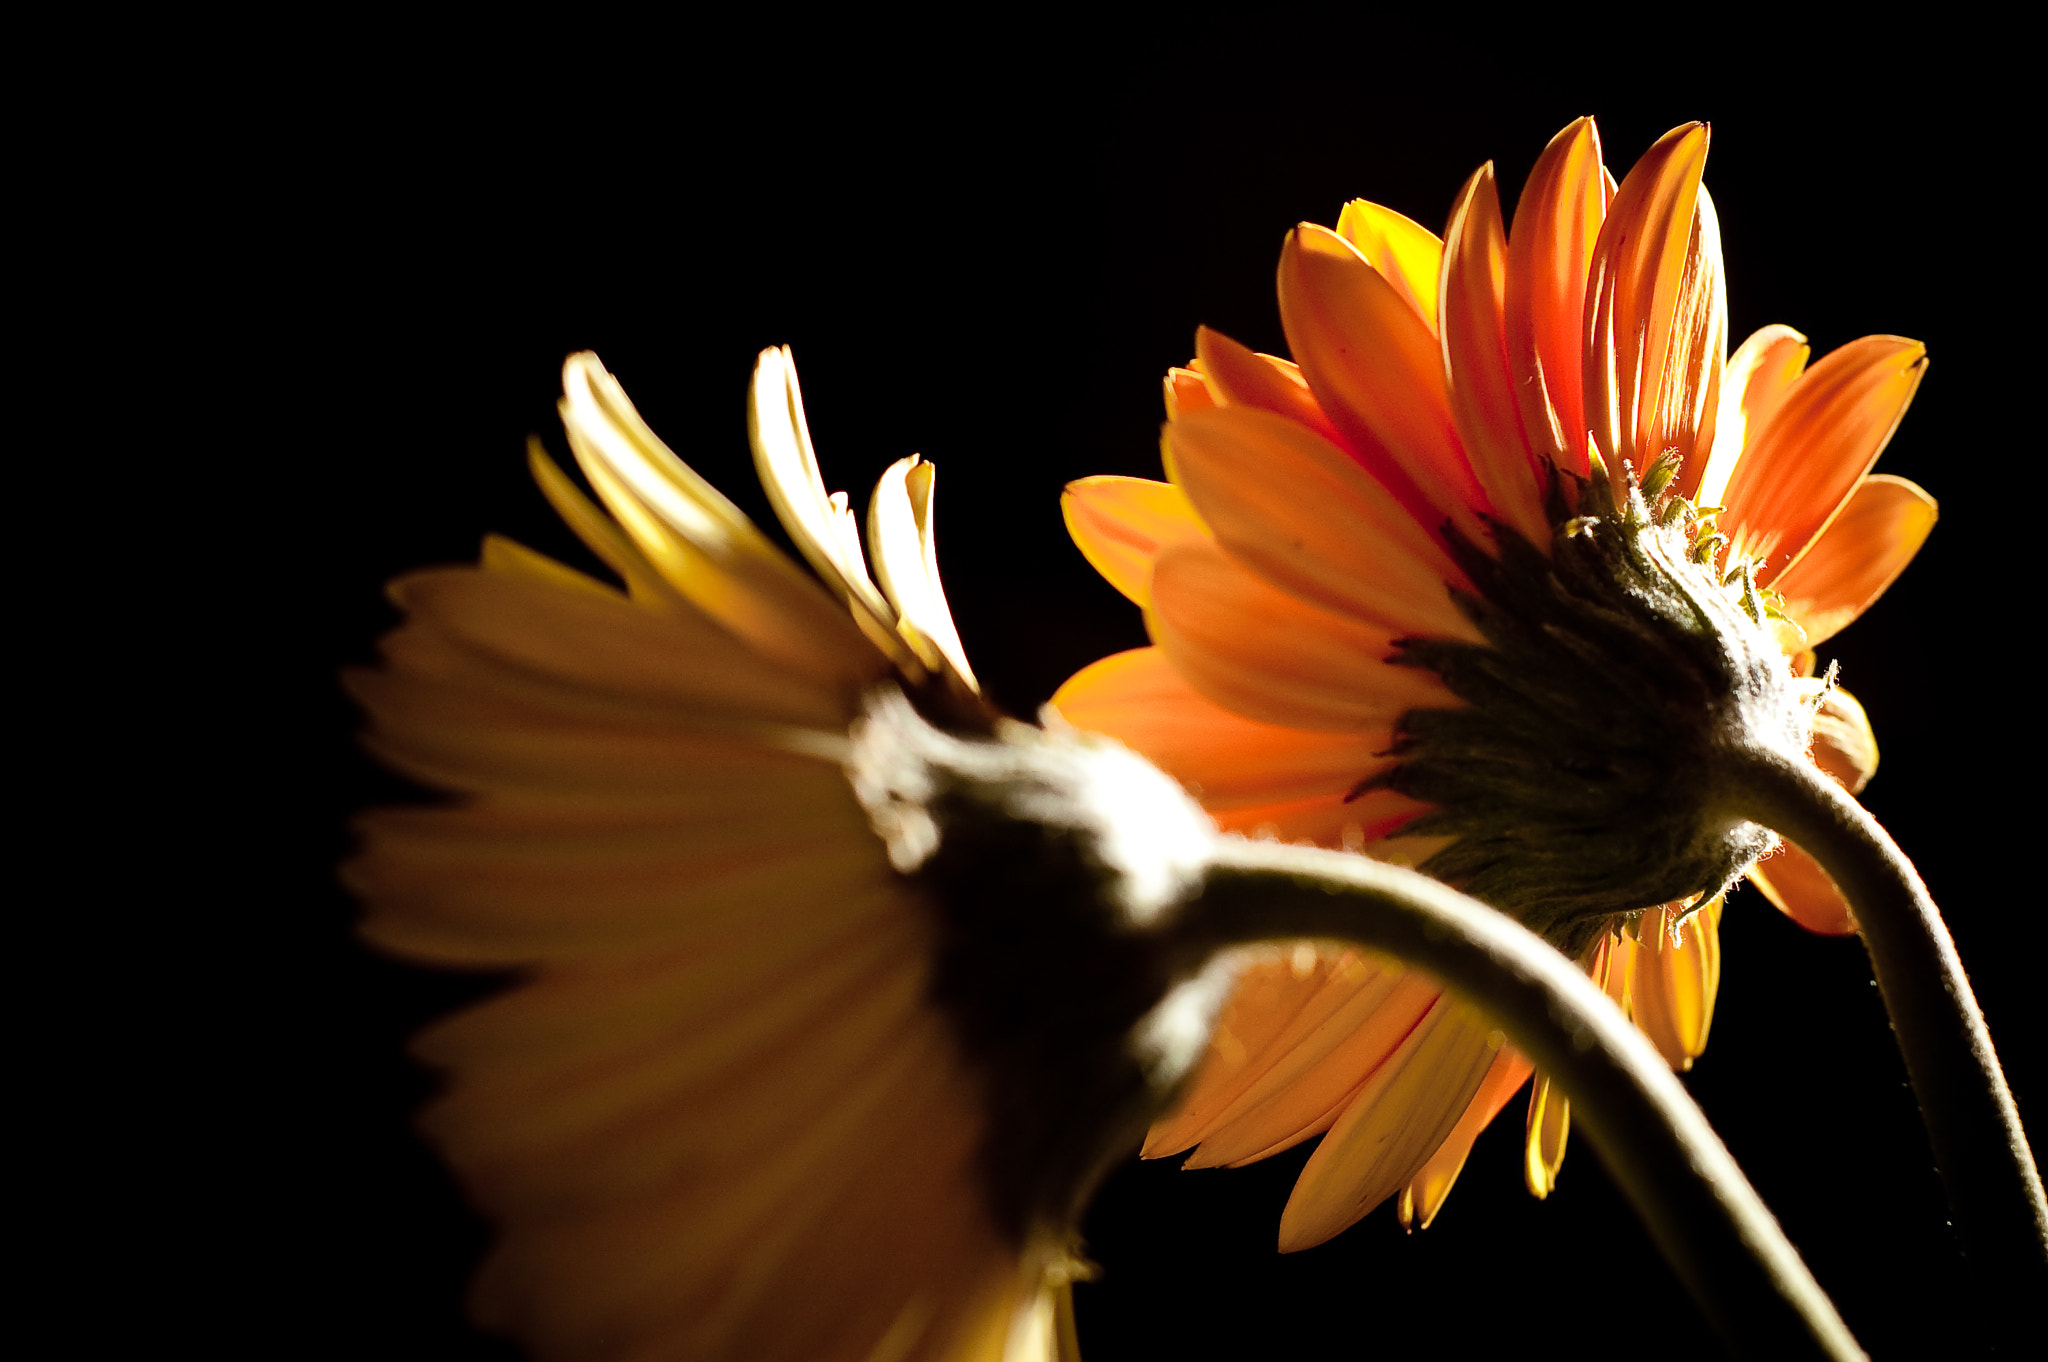 Photograph It was called yellow by Matt Mead on 500px